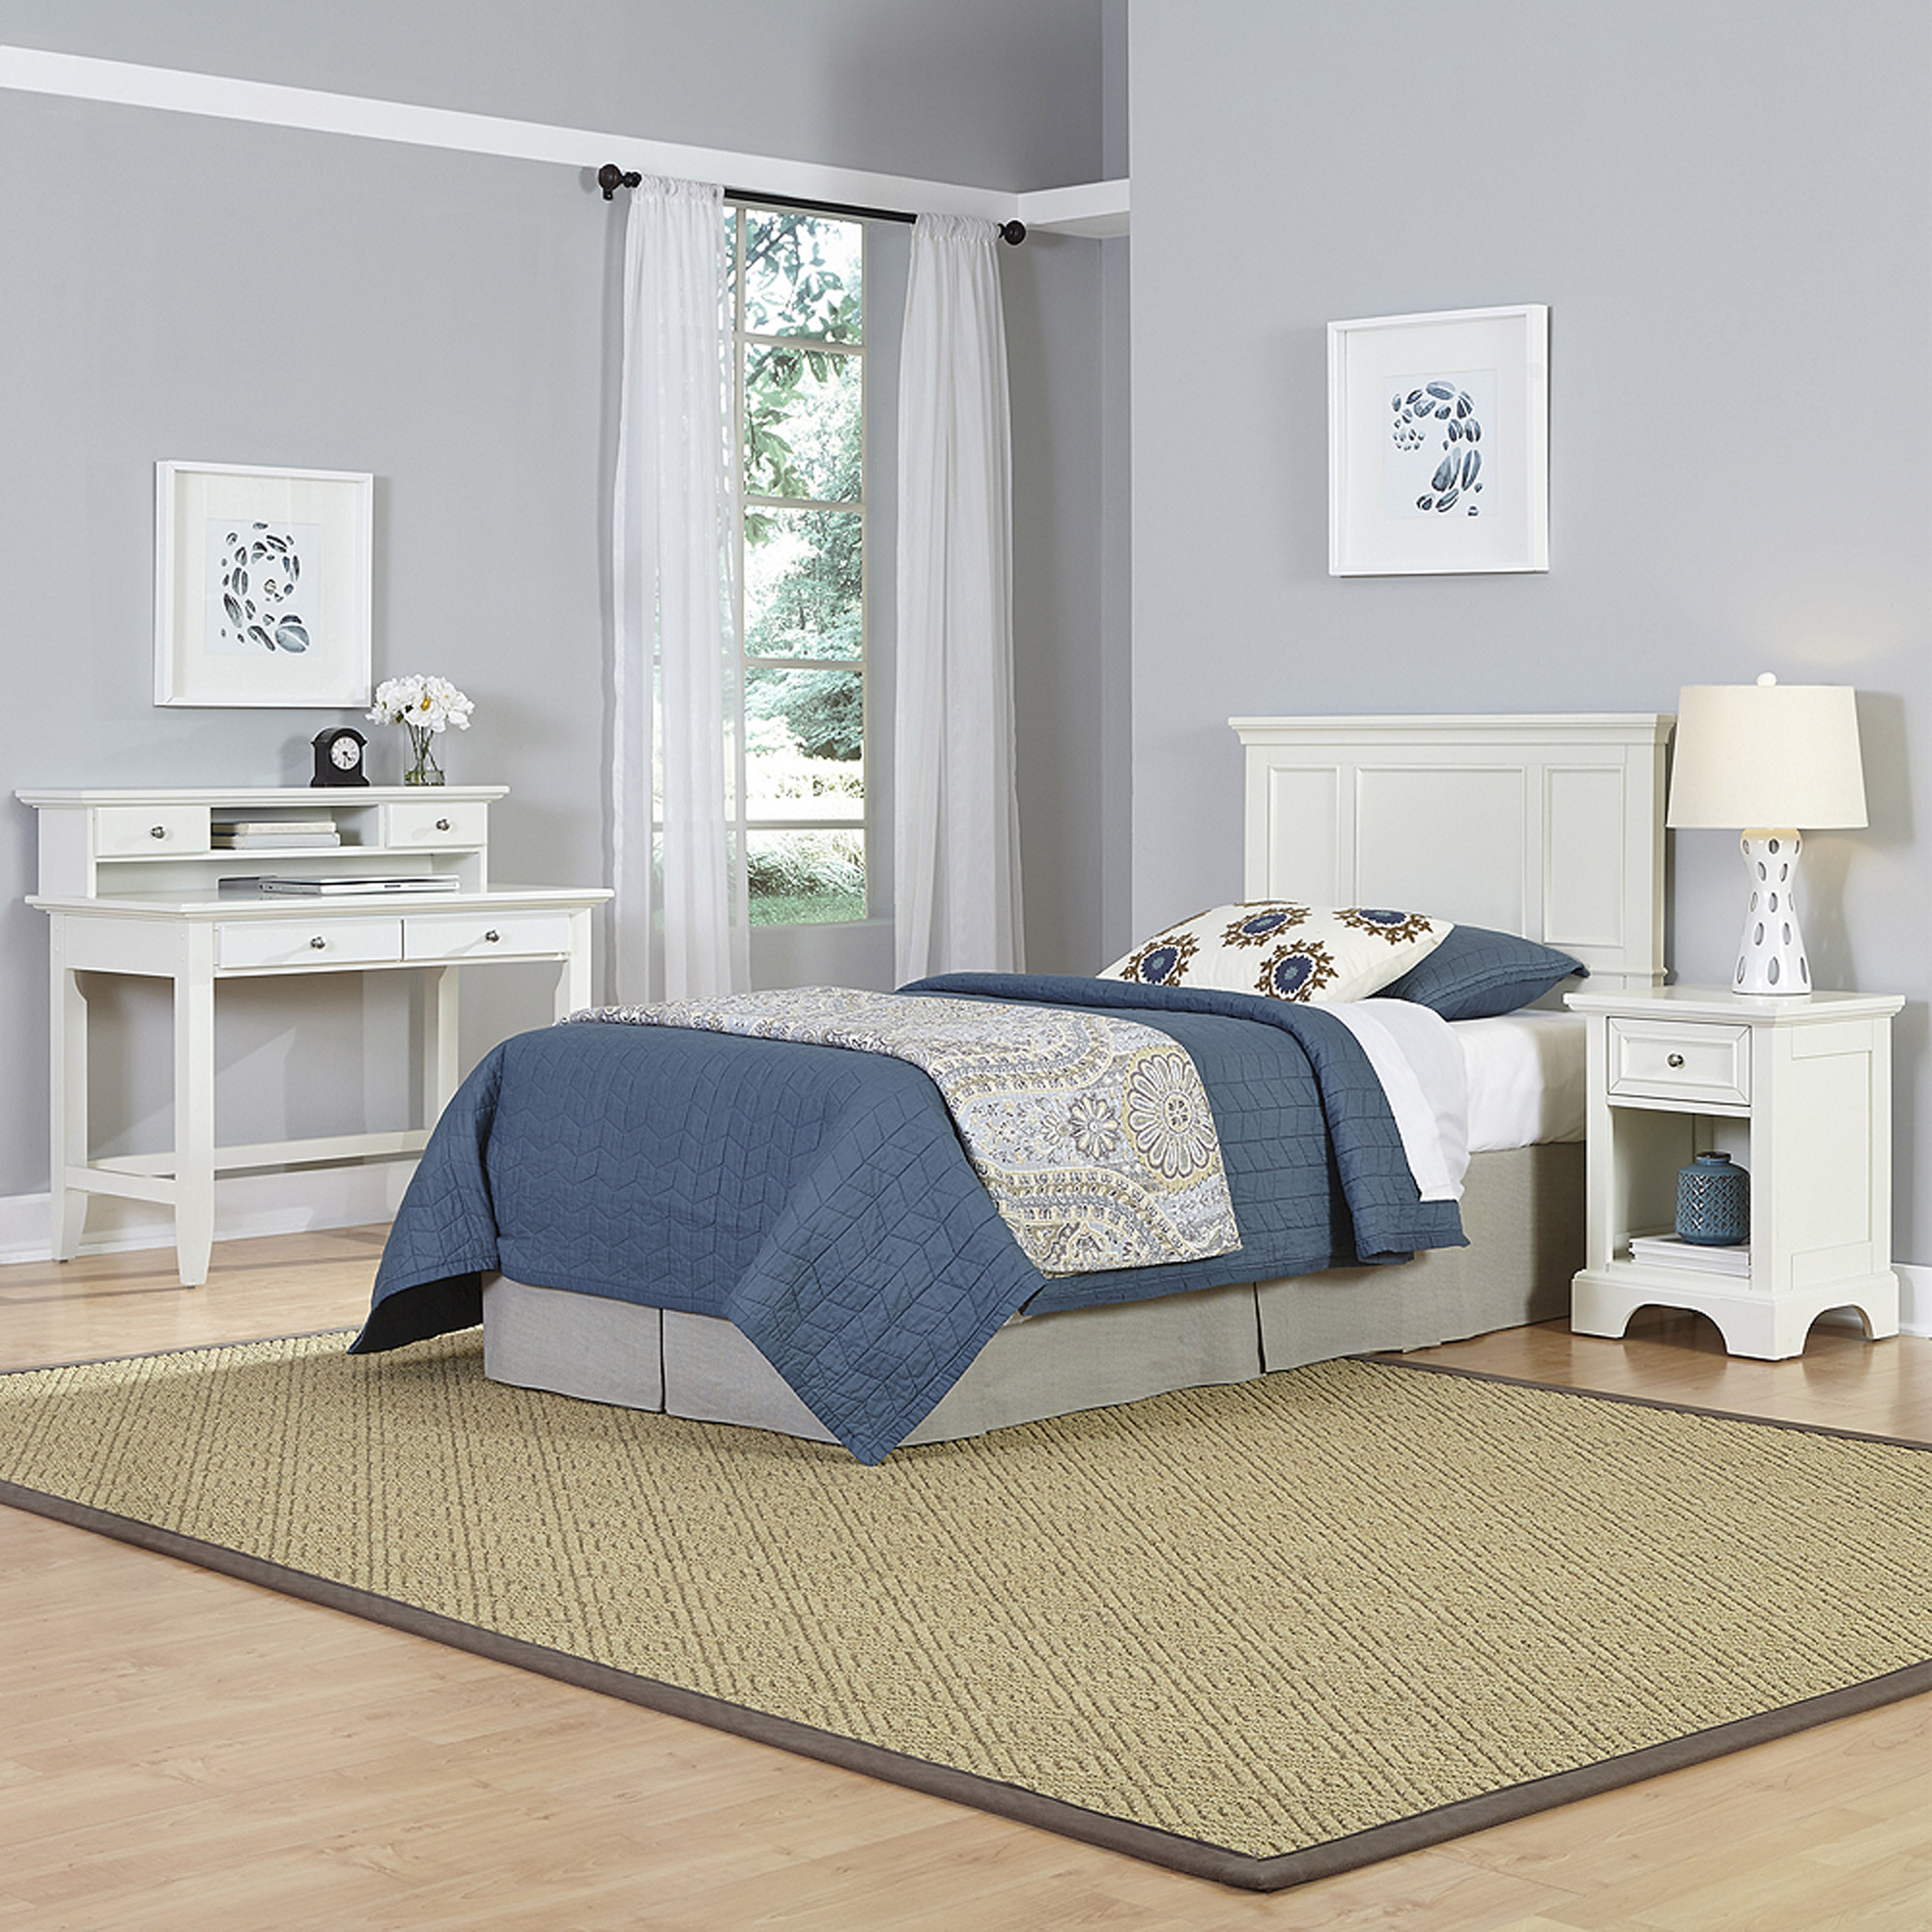 Home Styles Naples Twin Headboard, Night Stand and Student Desk with Hutch